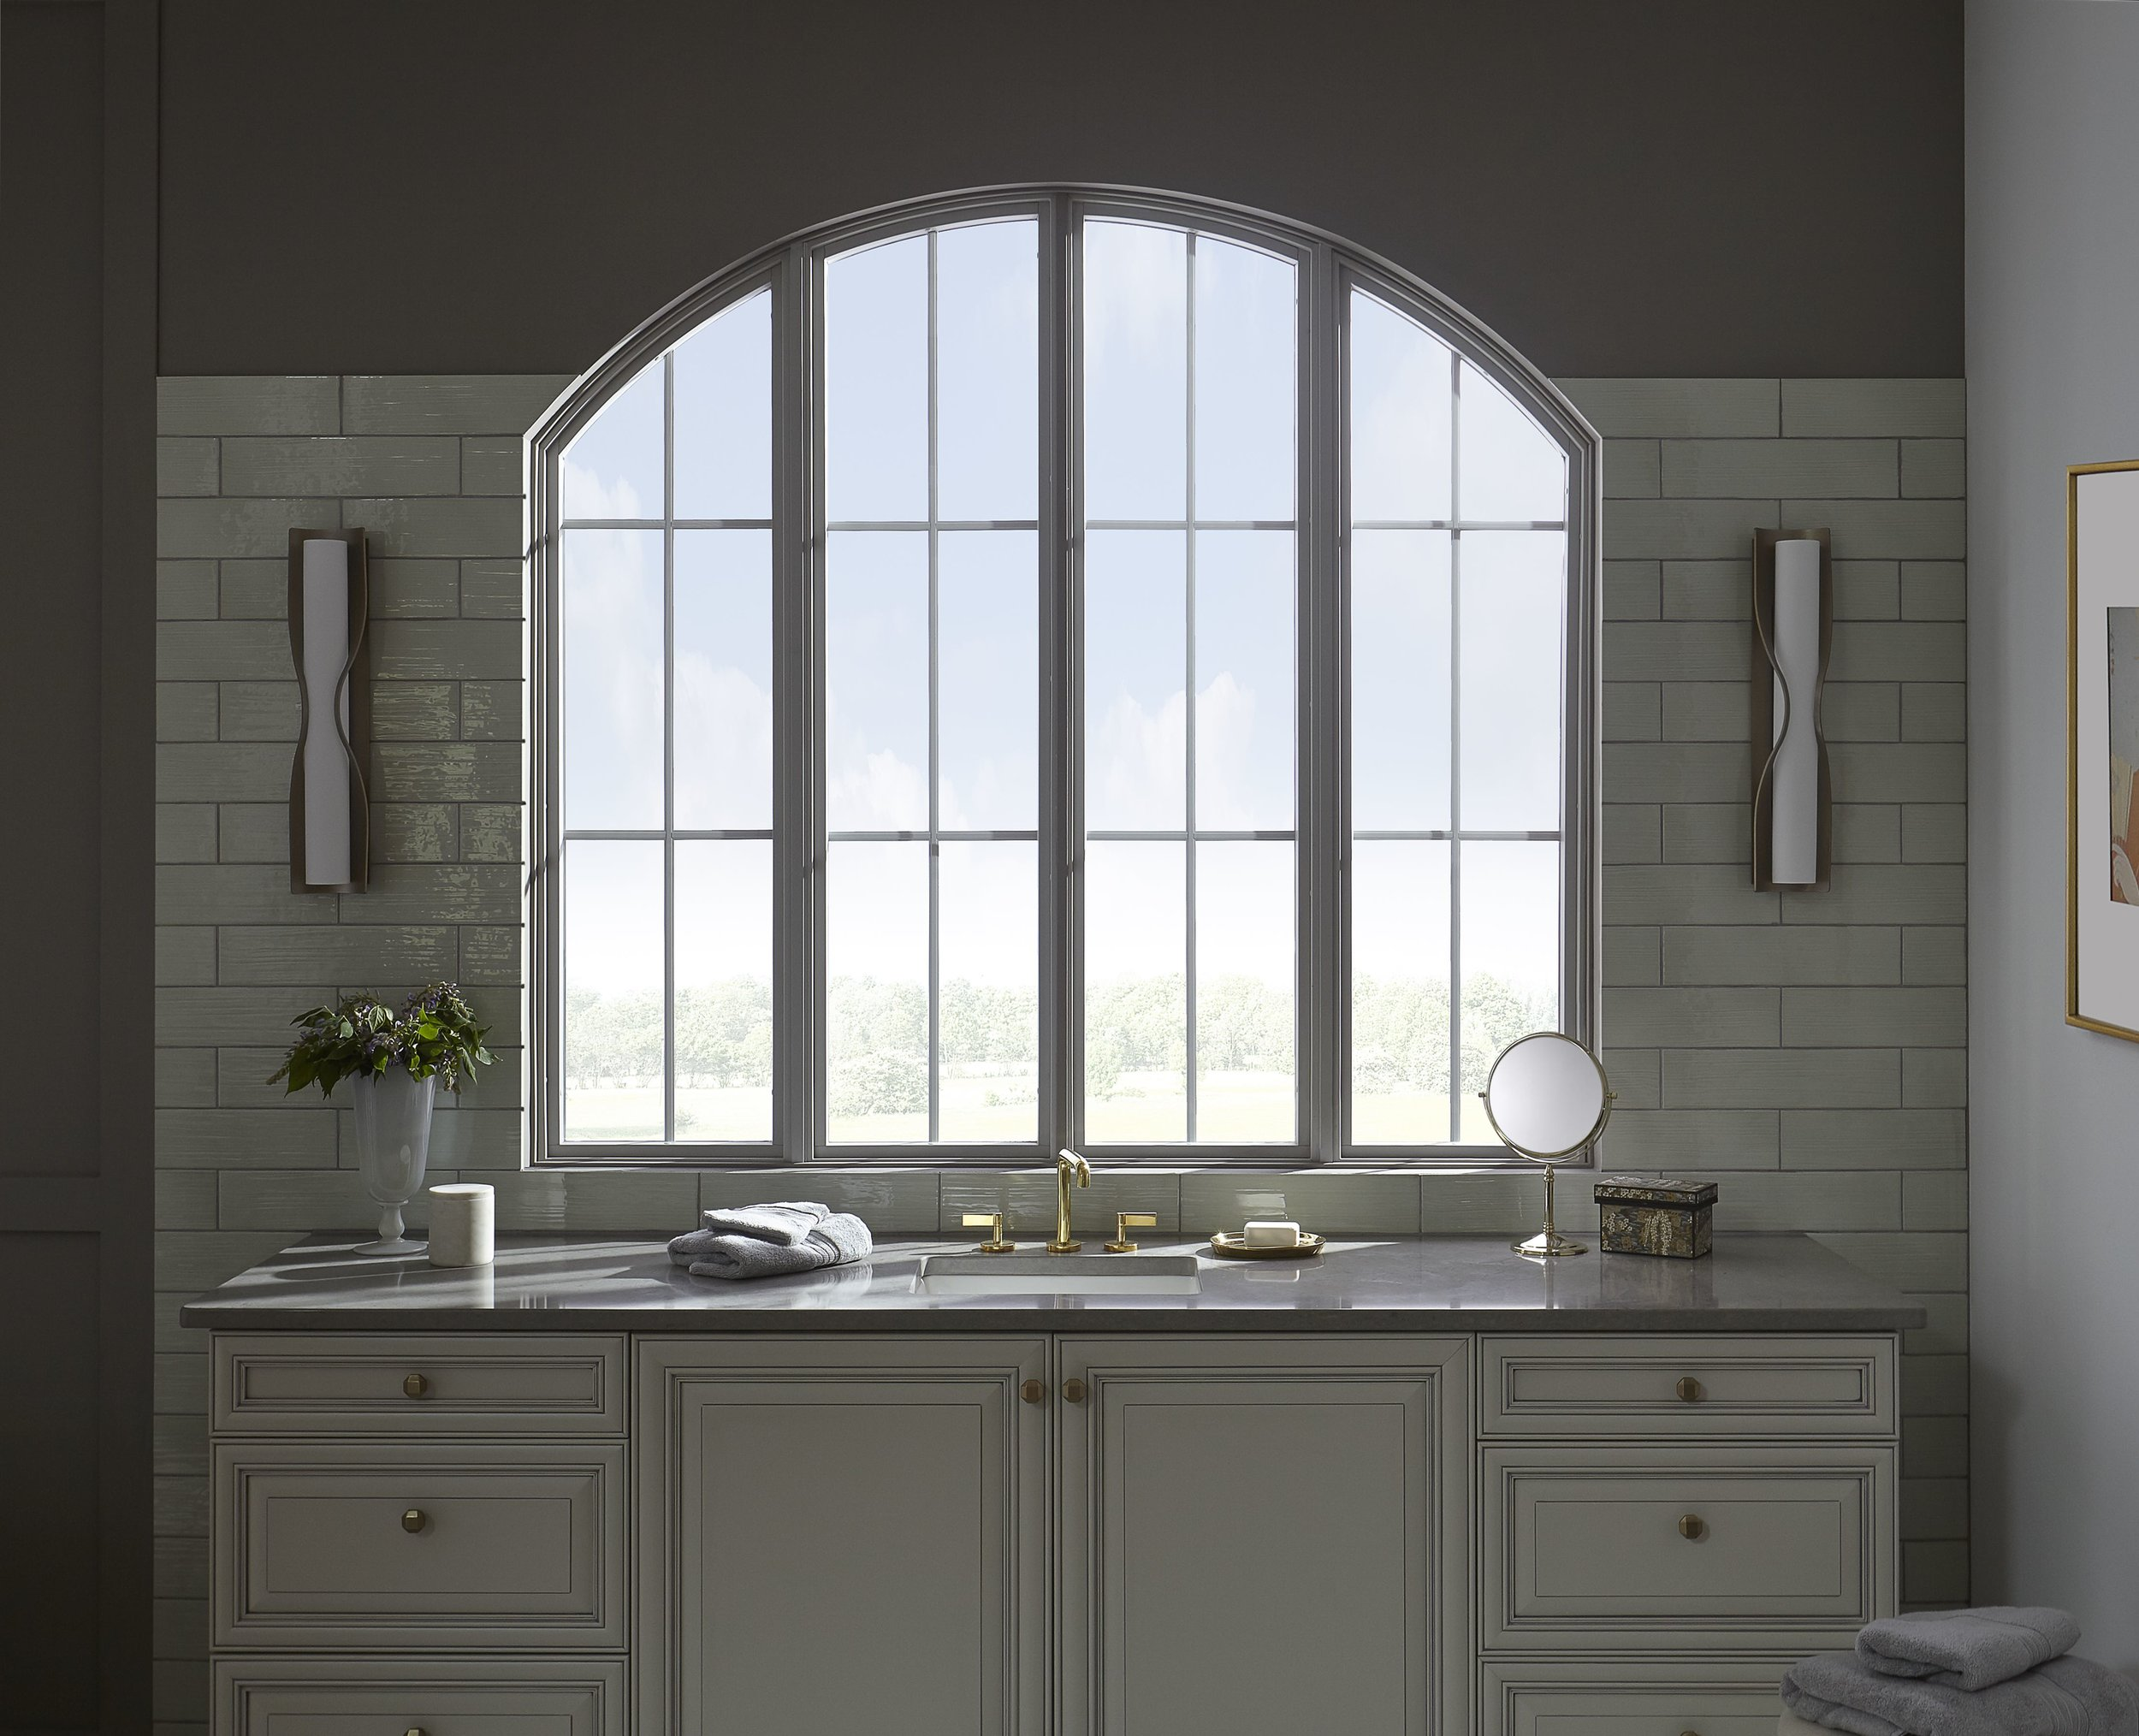 Arched Window_Pella Close up_Final_V2.jpg